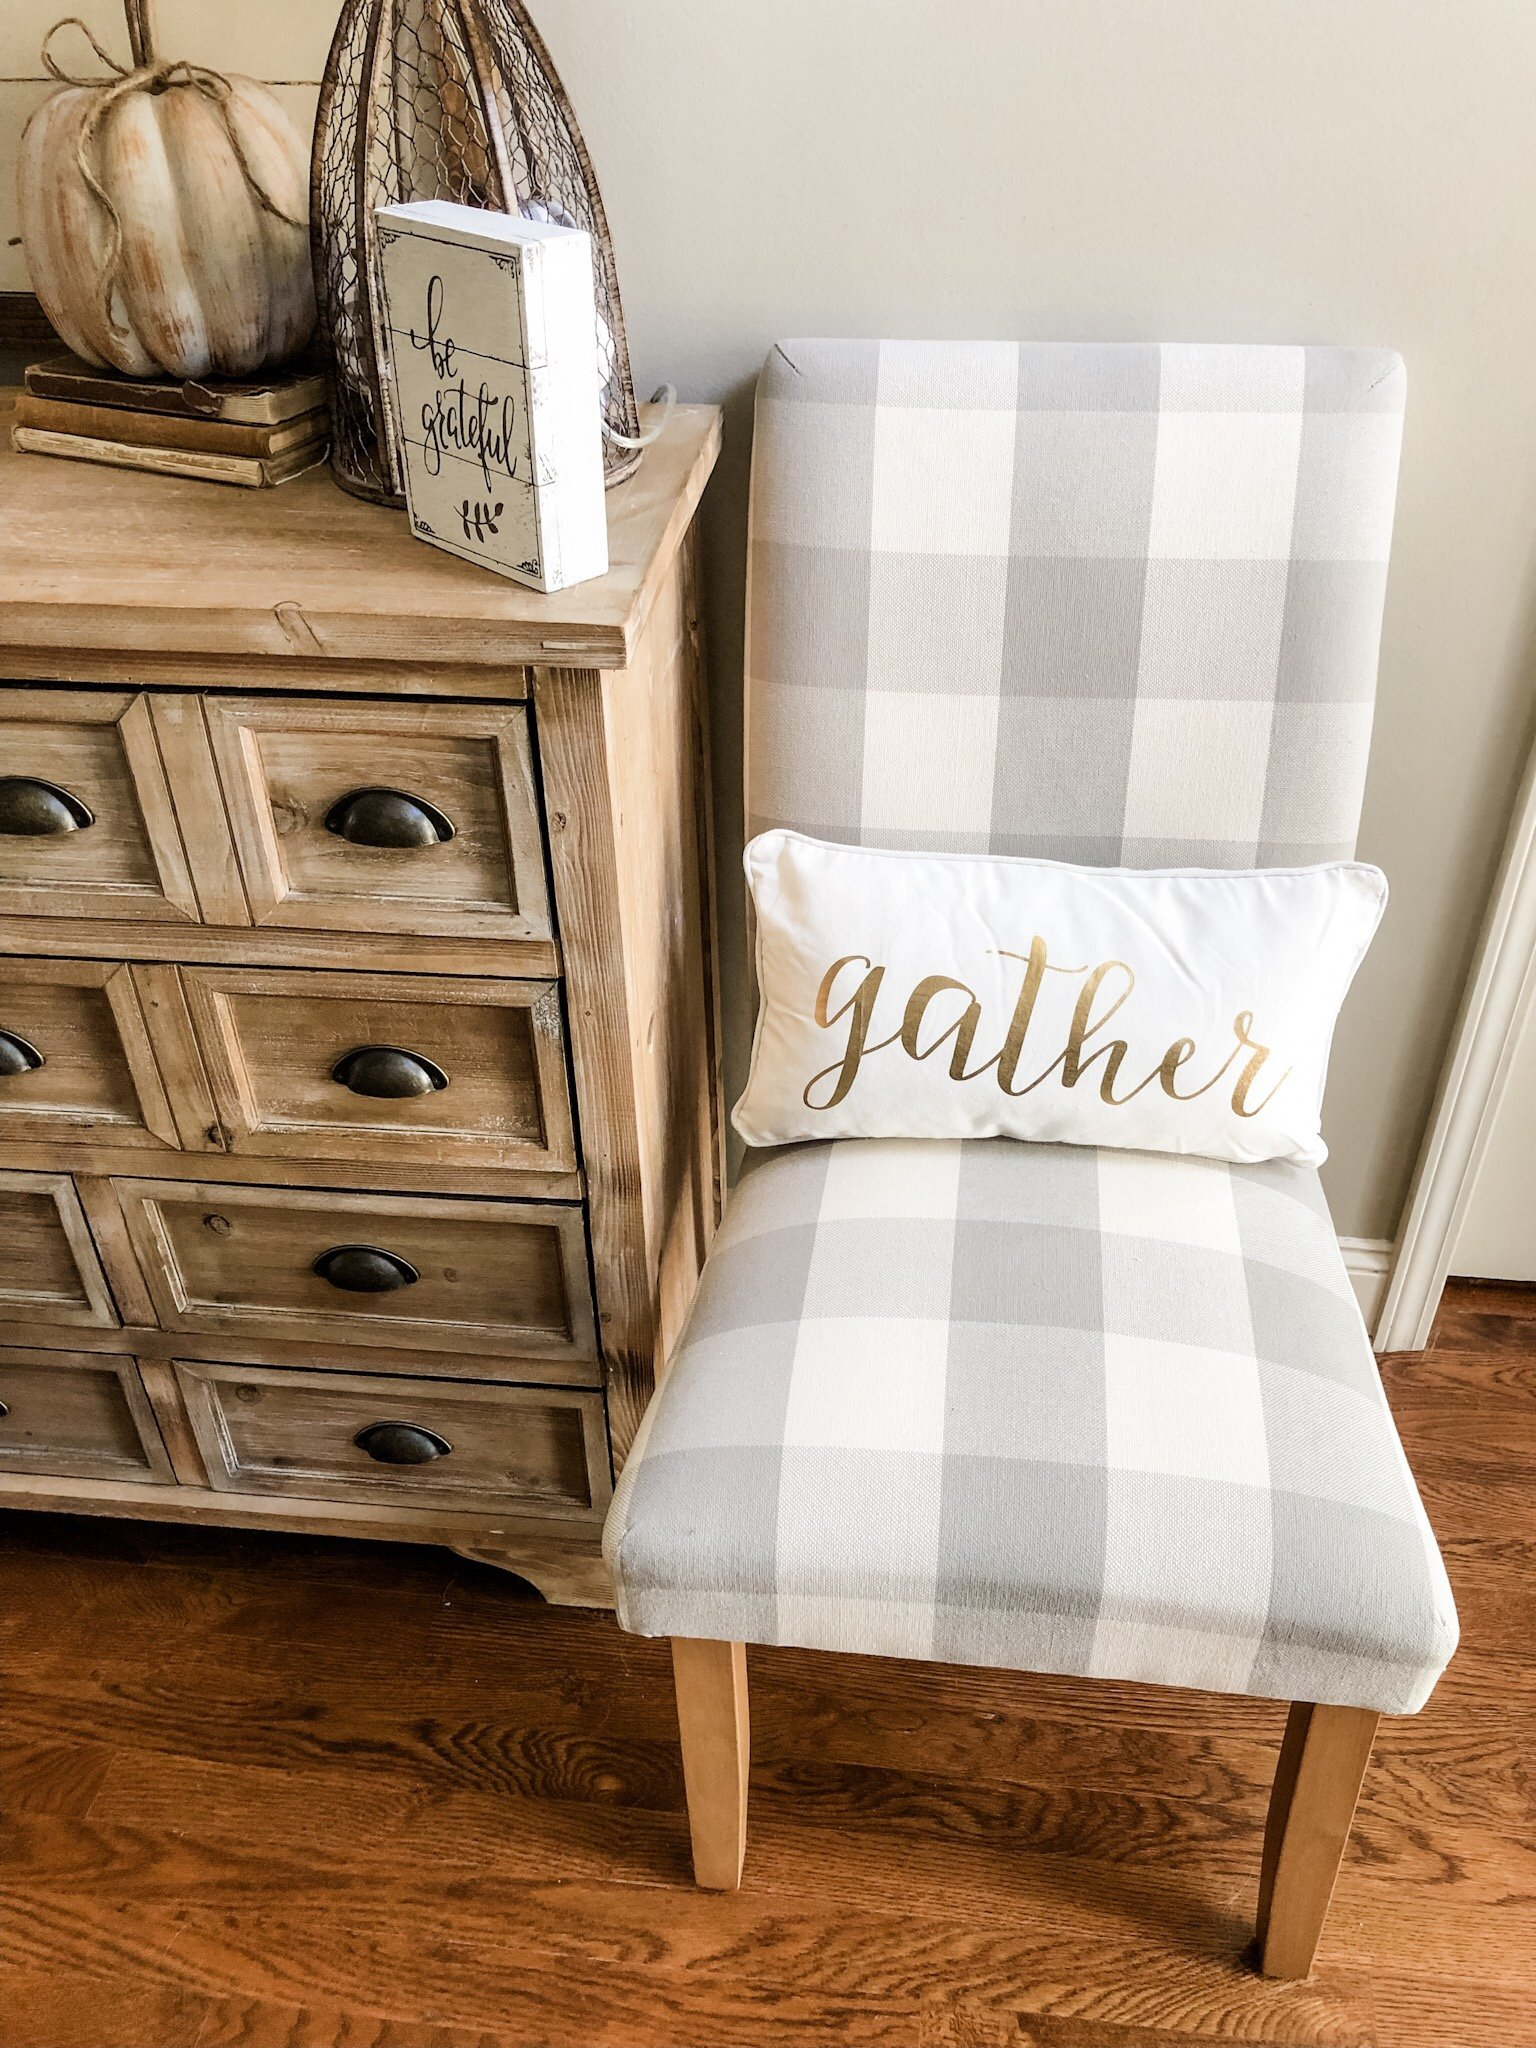 Fall decorating ideas using copper accents